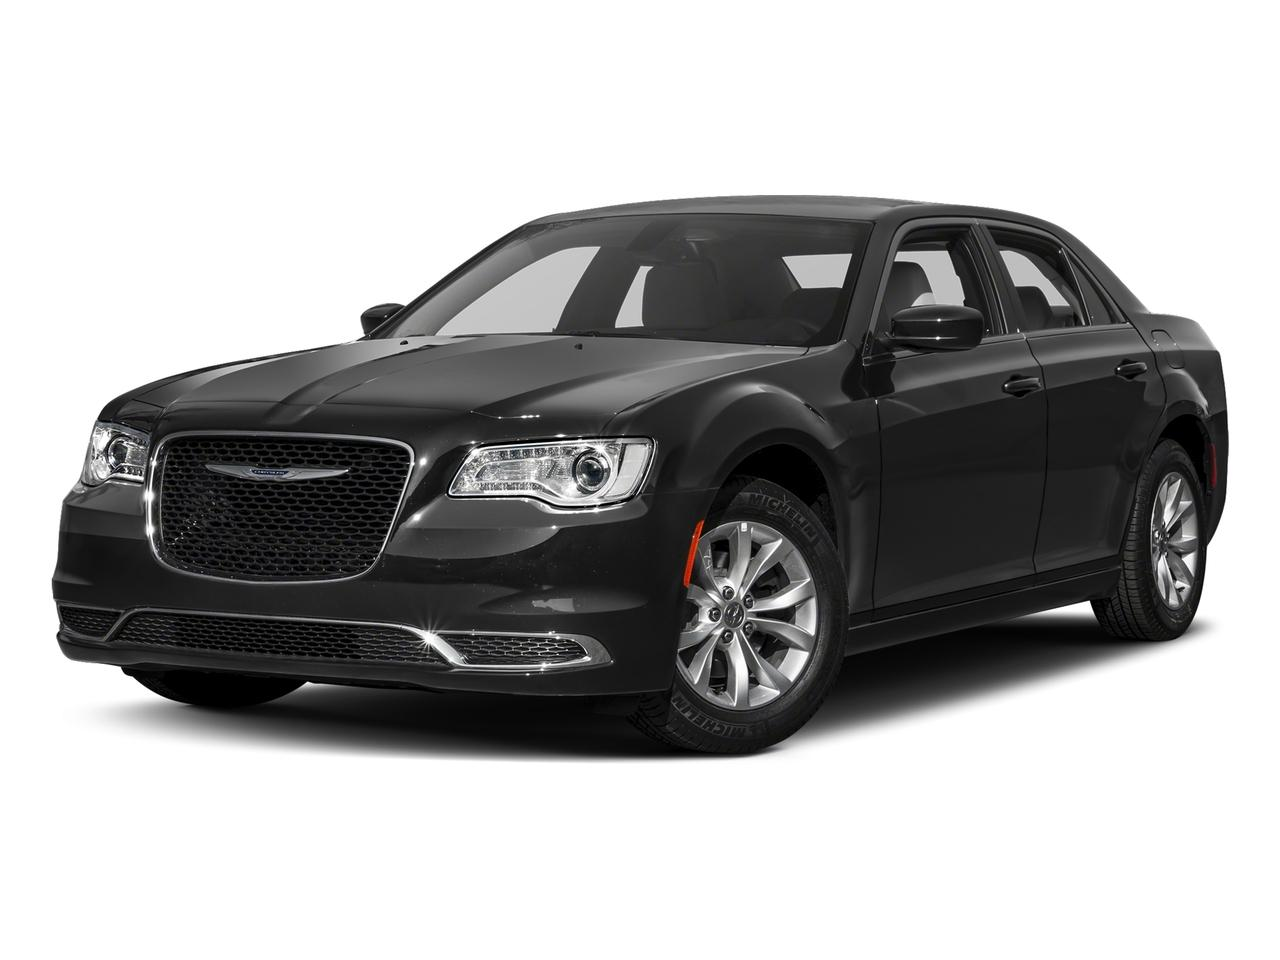 2017 Chrysler 300 Vehicle Photo in Owensboro, KY 42303